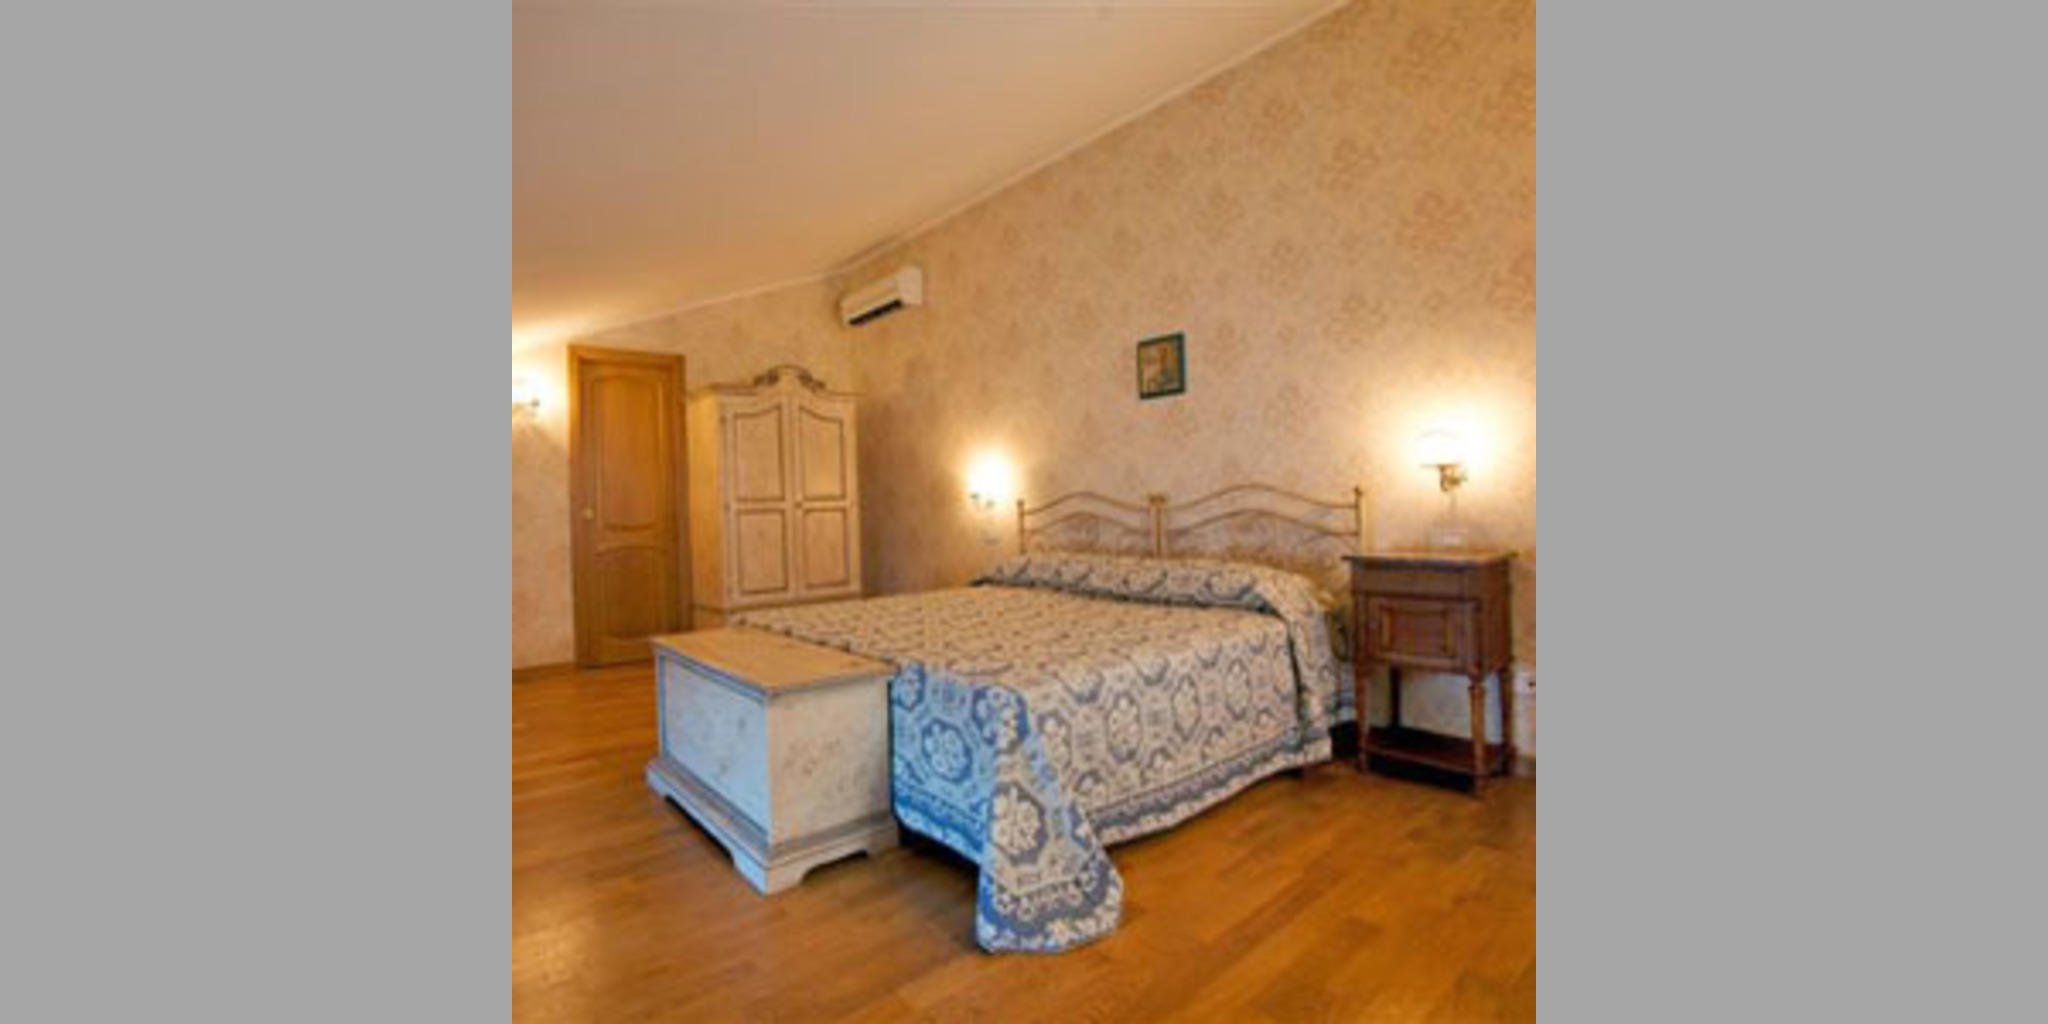 Bed & Breakfast Vico Equense - Penisola Sorrentina